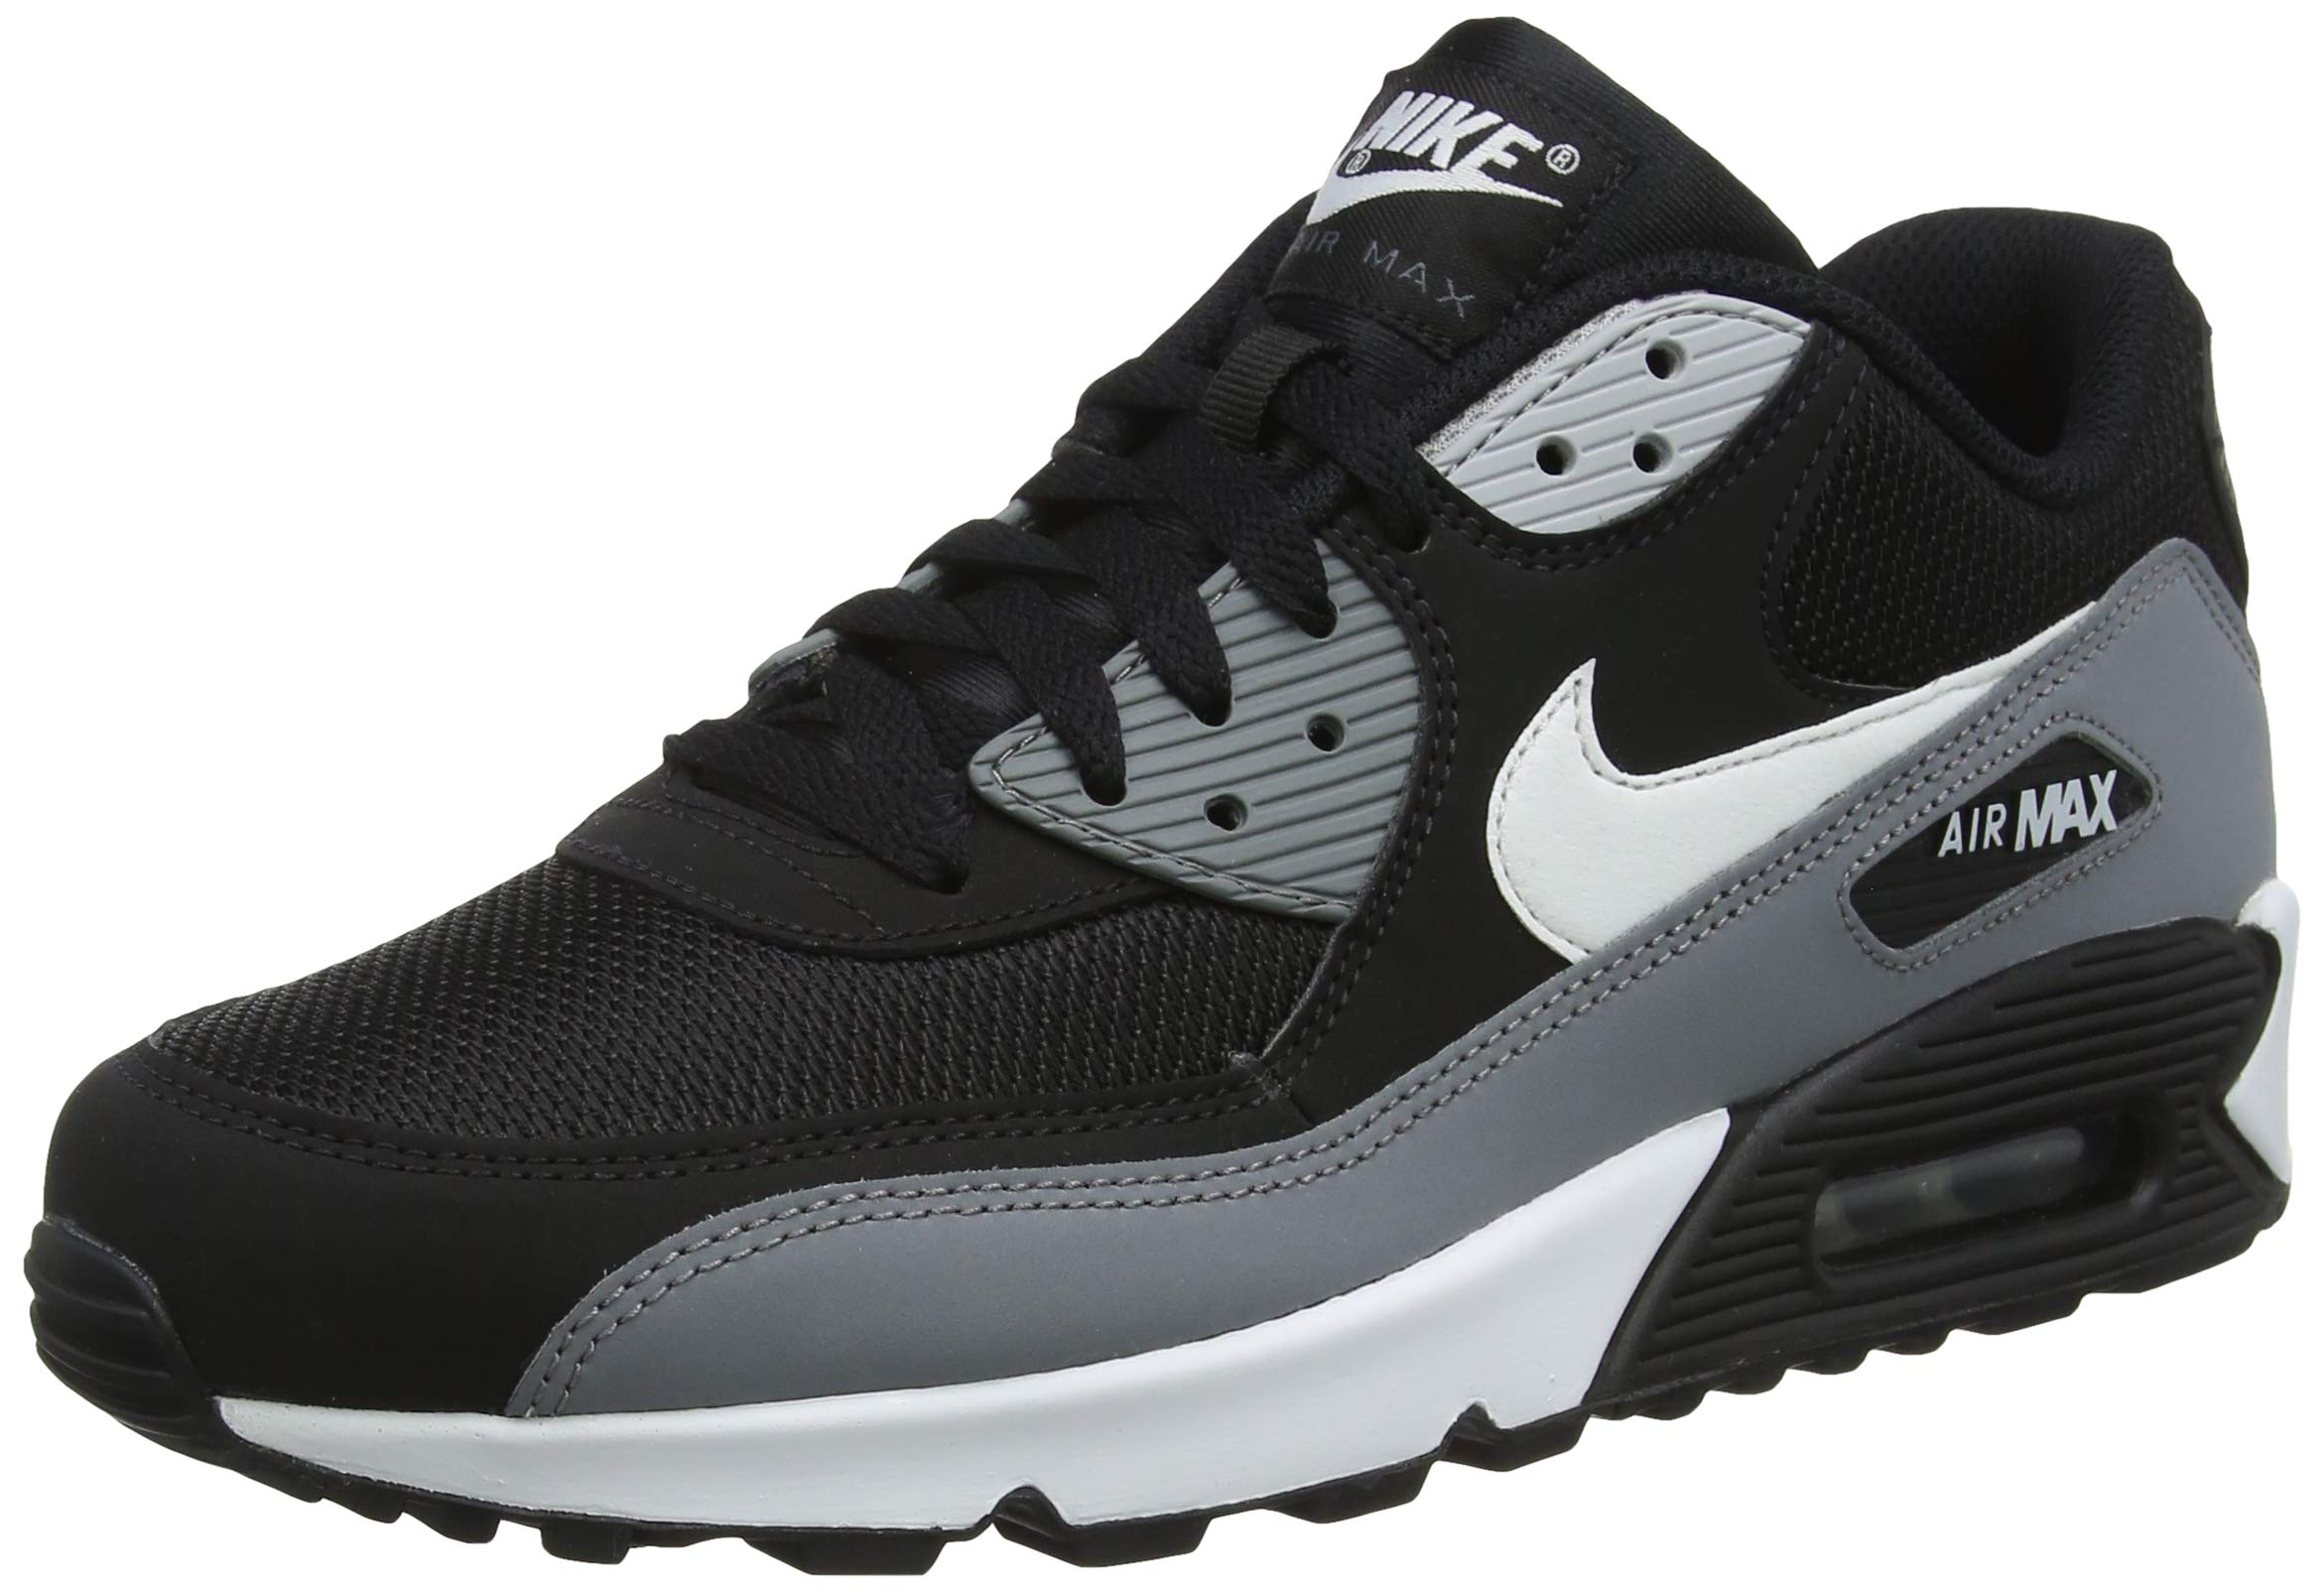 on sale d9b10 c4d98 Galleon - Nike Mens Air Max 90 Essential Running Shoes Black White Cool Grey Anthracite  AJ1285-018 Size 11.5